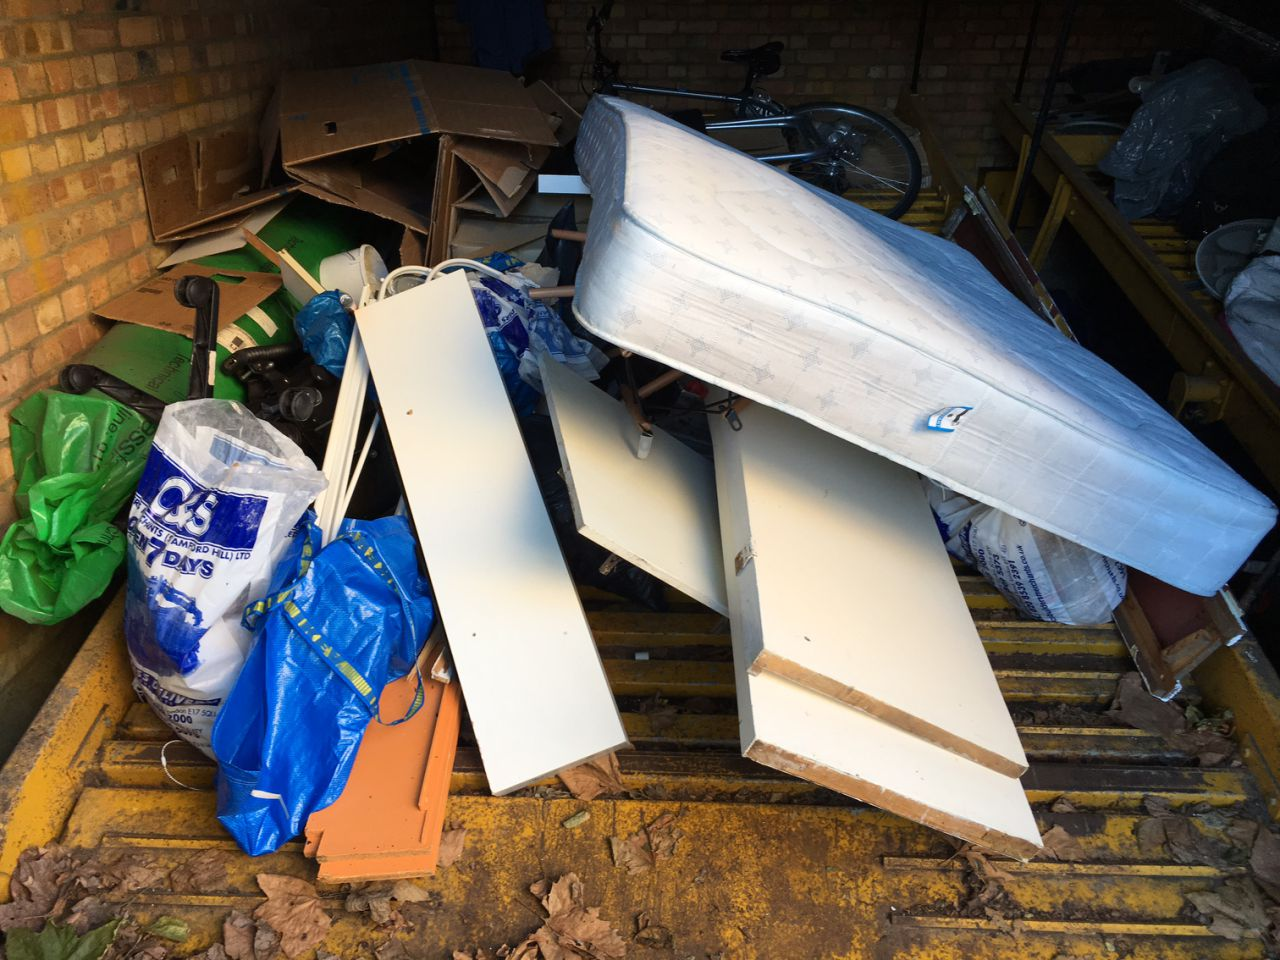 Rubbish Removal Service in Camberwell